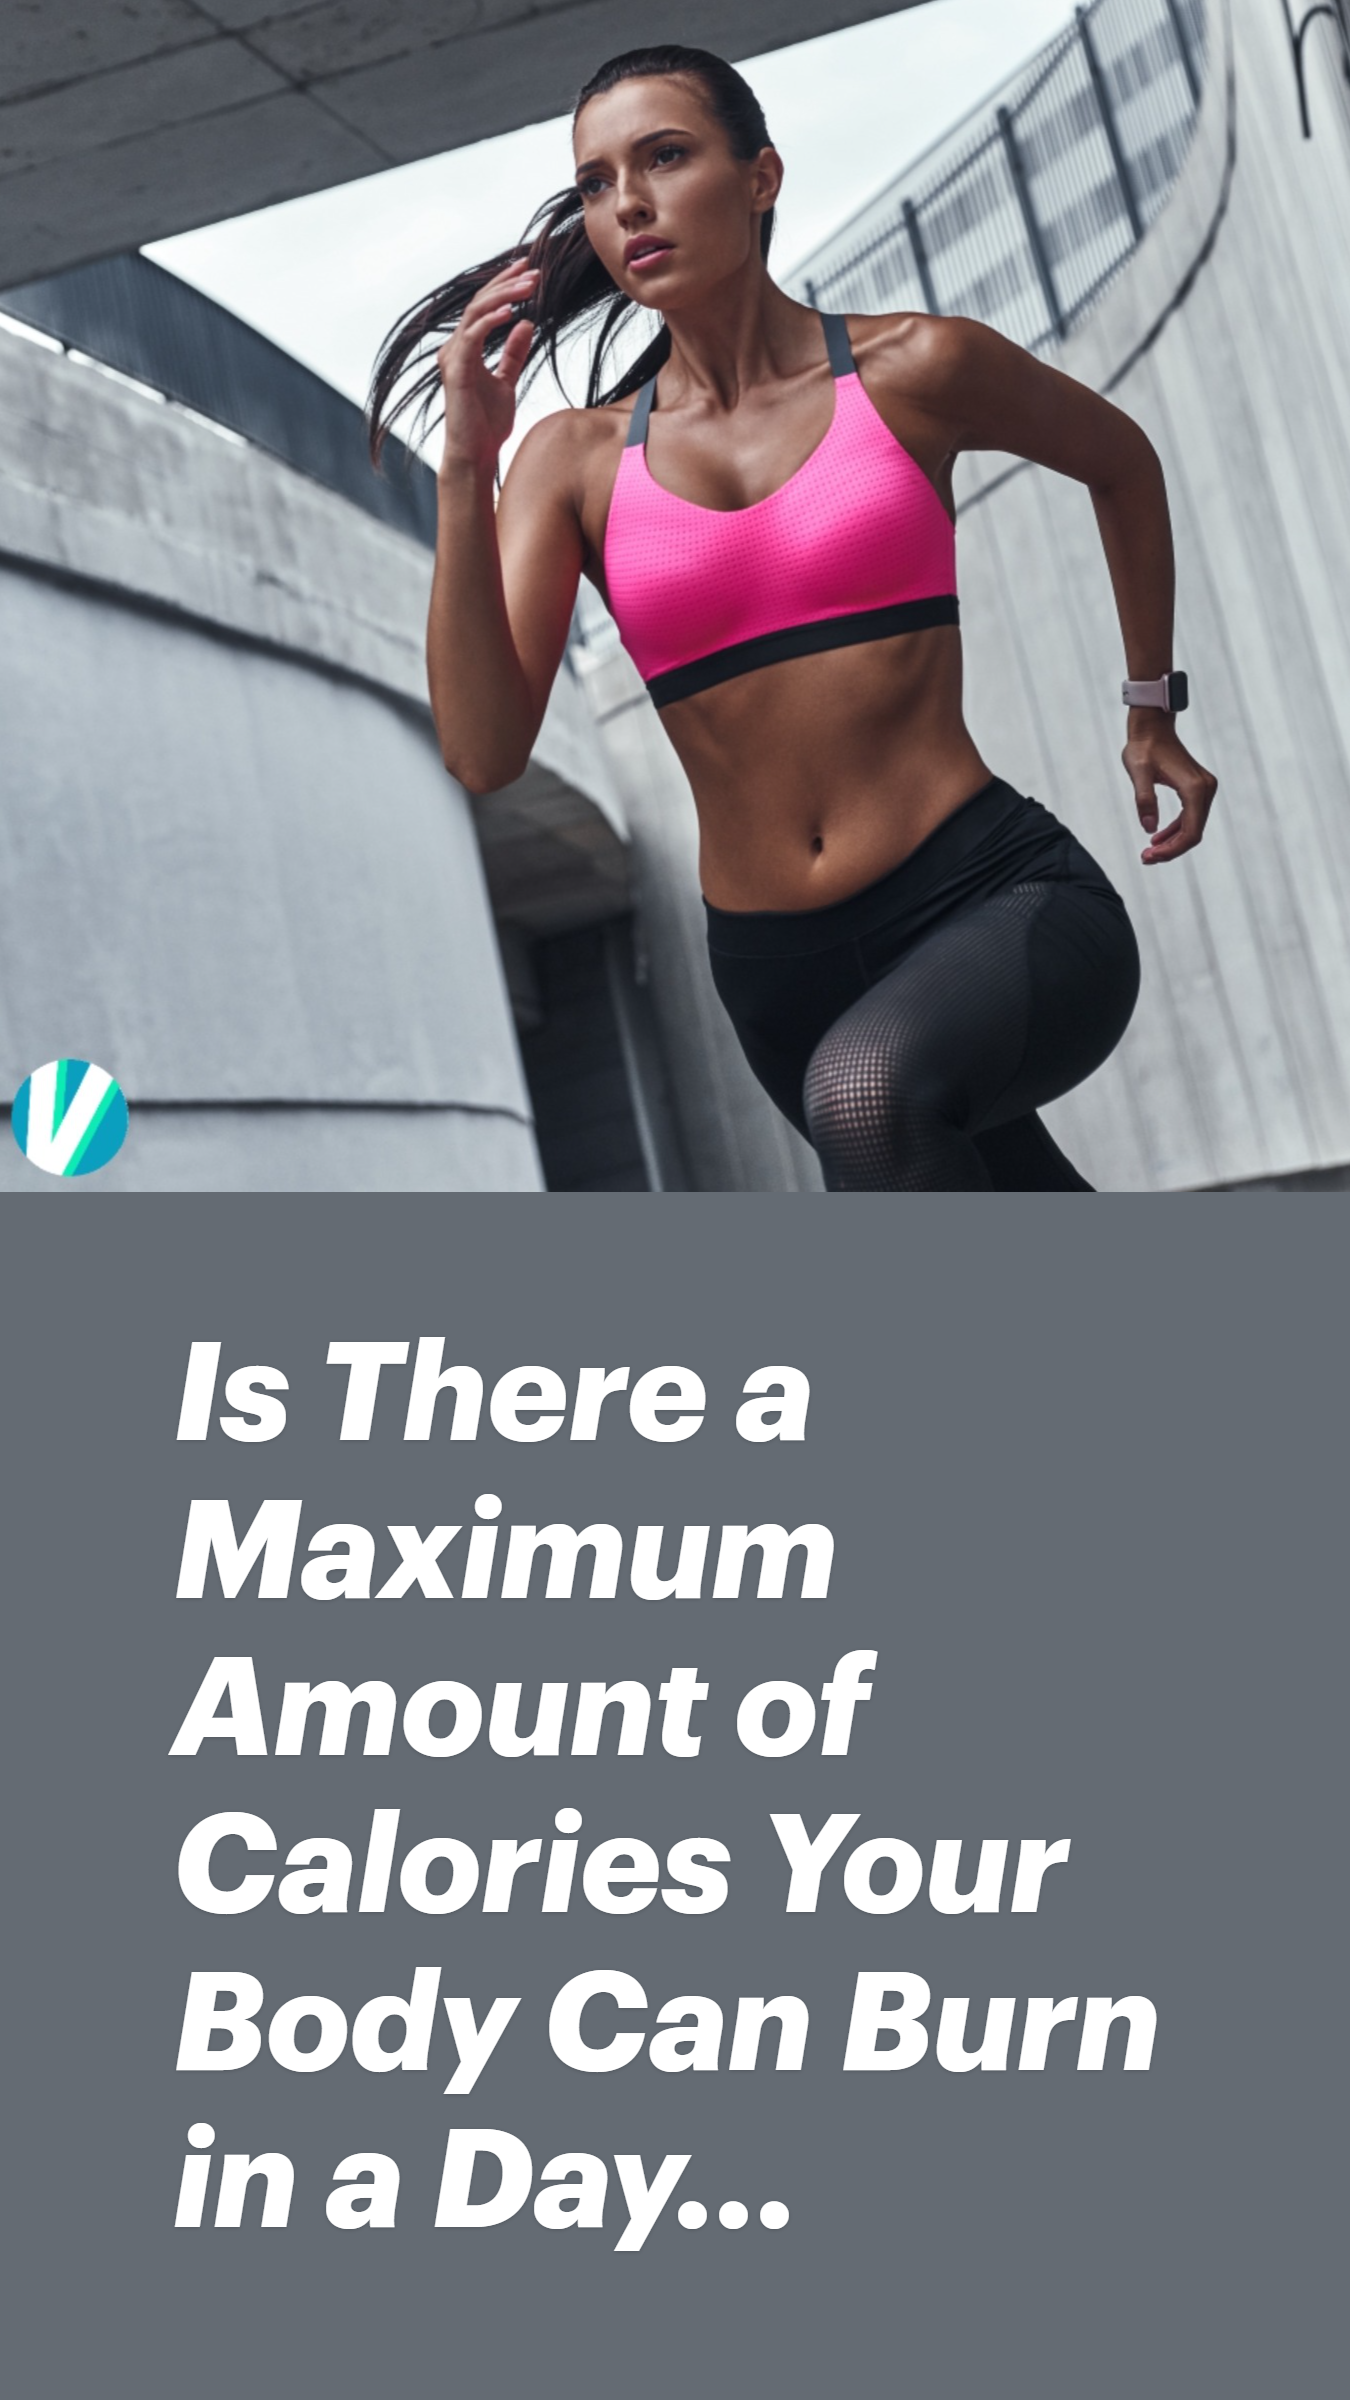 Is There a Maximum Amount of Calories Your Body Can Burn in a Day...